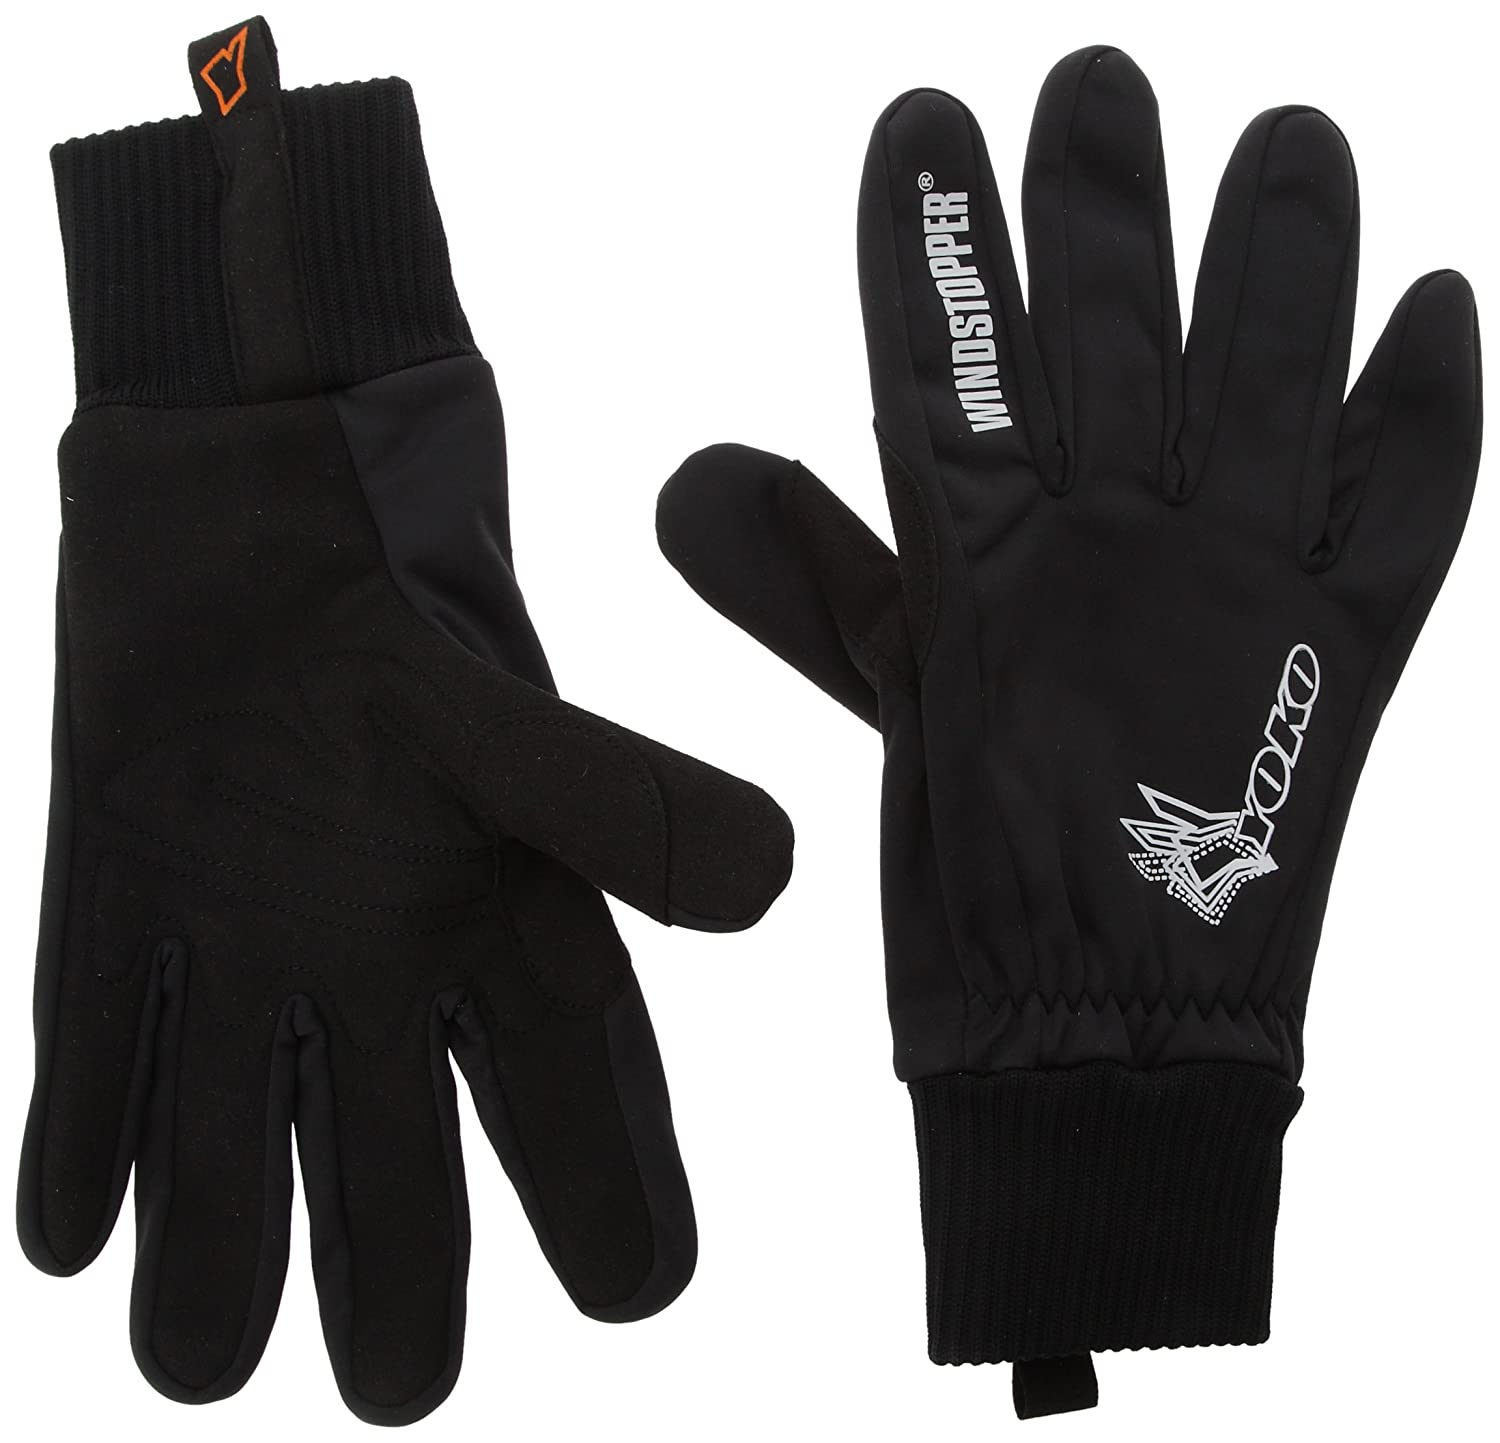 Yoko motorcycle gloves - Yoko Windstopper Soft Shell Cross Country Skiing Gloves Black Black Size Fr L Taille Fabricant 10 Amazon Co Uk Sports Outdoors